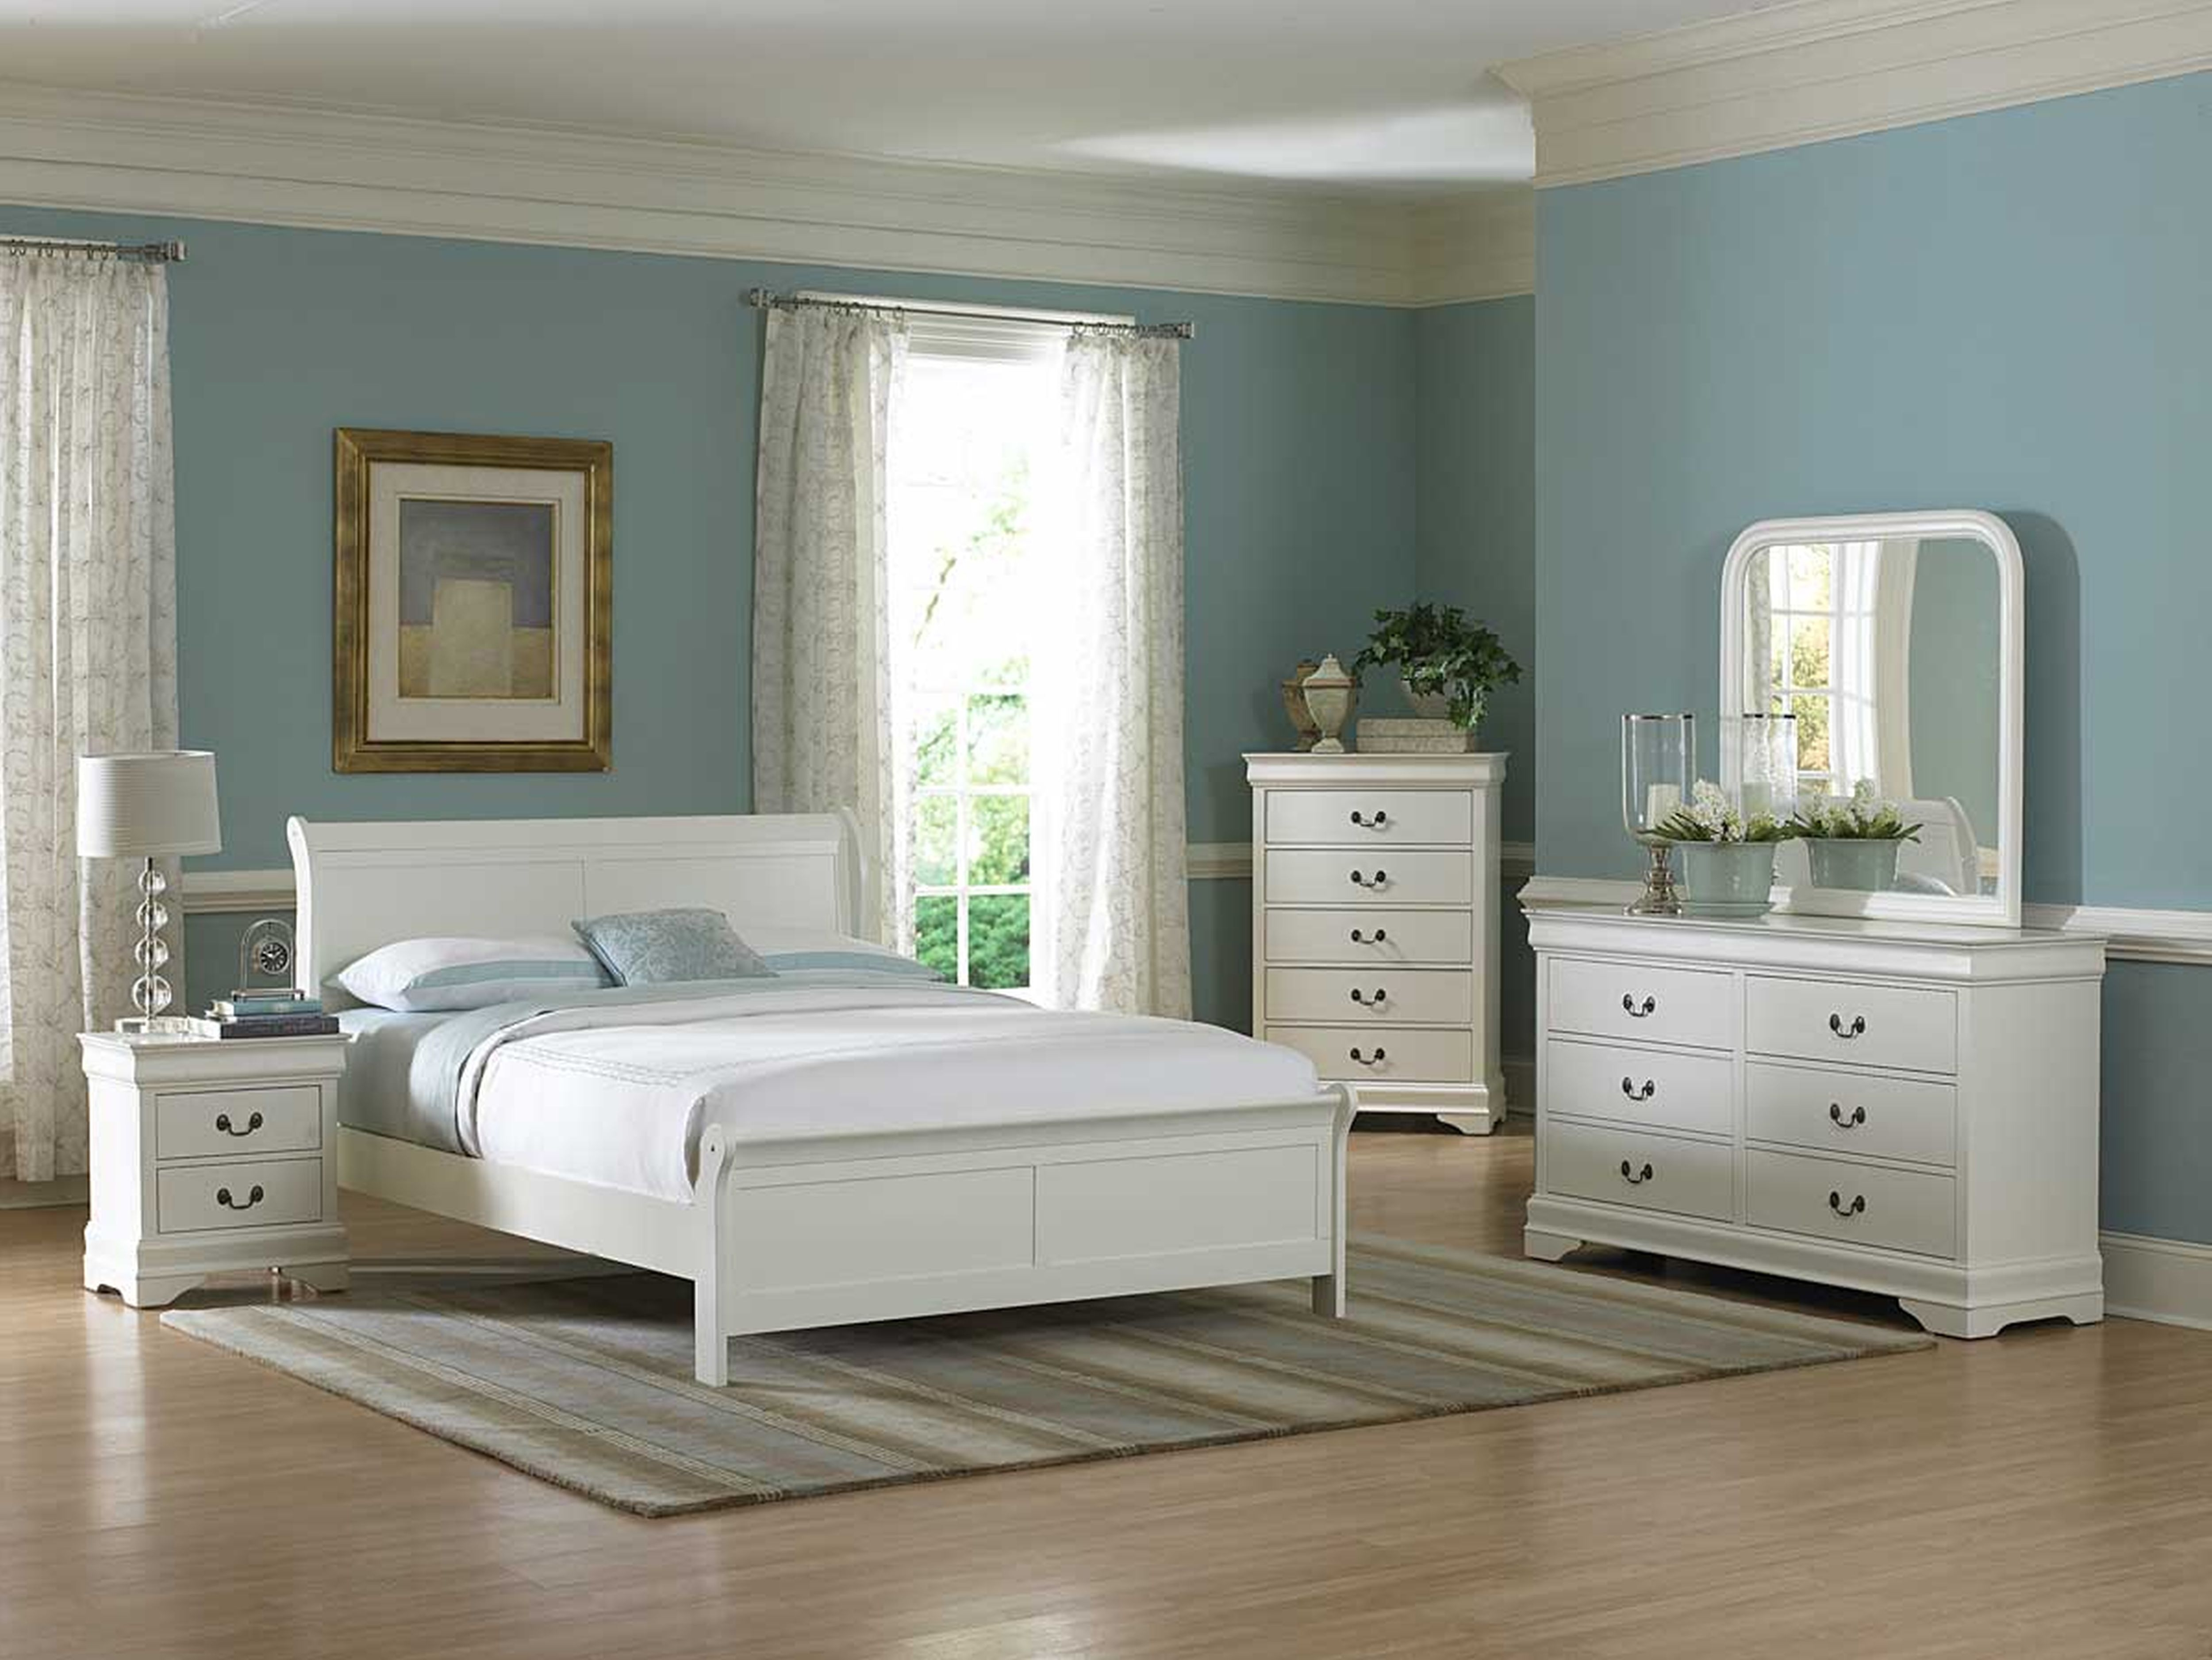 bedroom white furniture decorating photo - 10